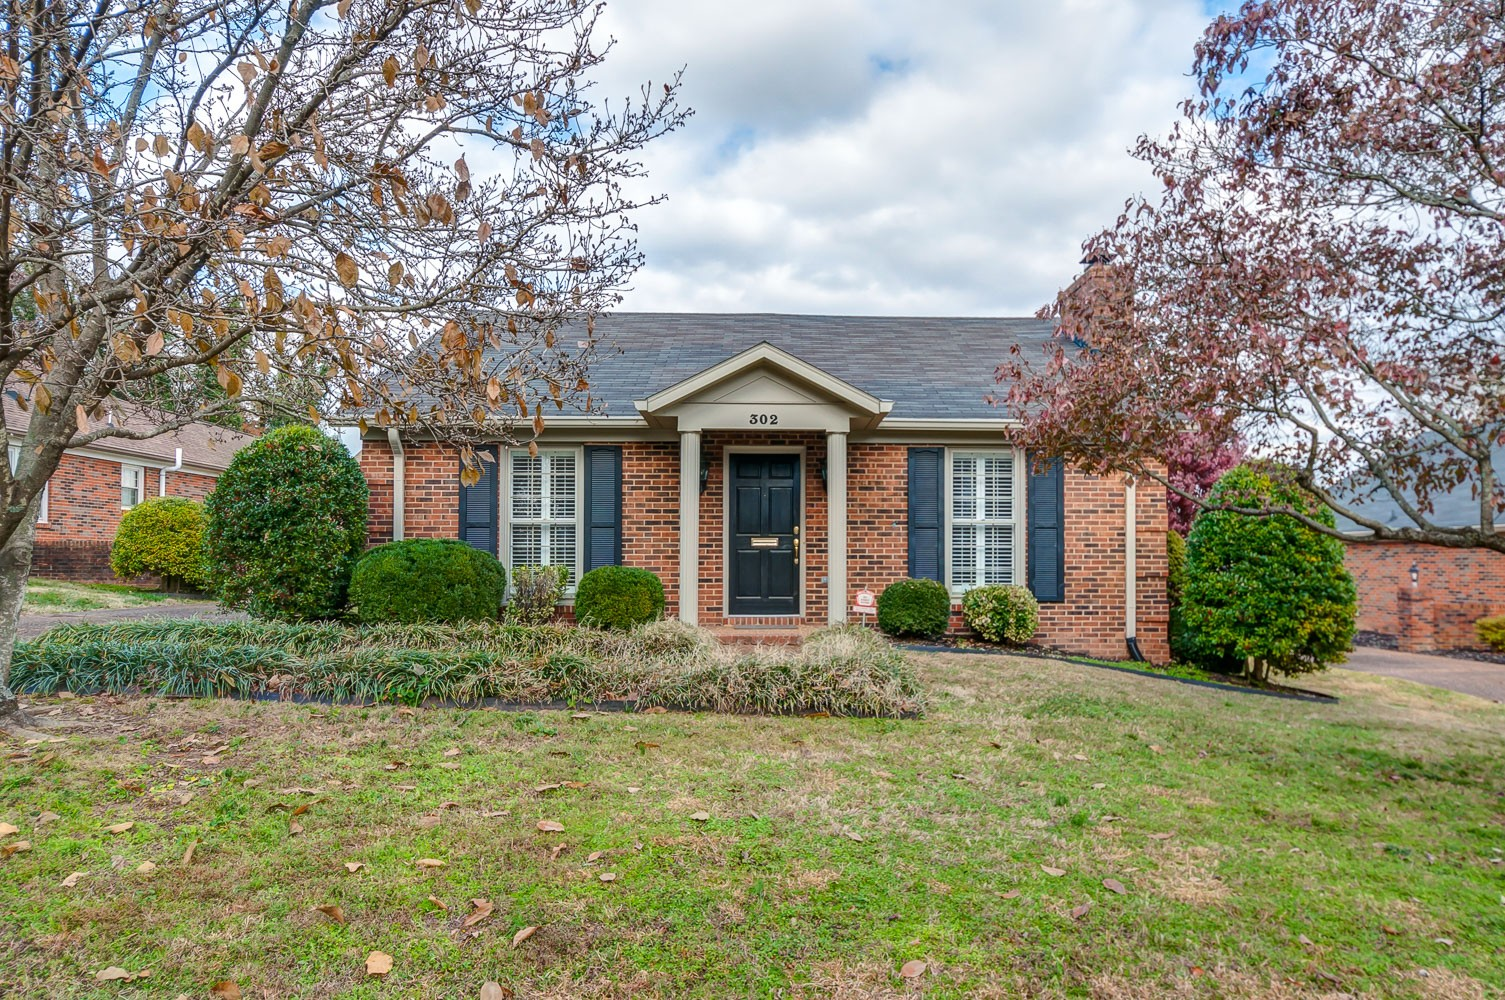 302 W 6th St, Columbia, Tennessee